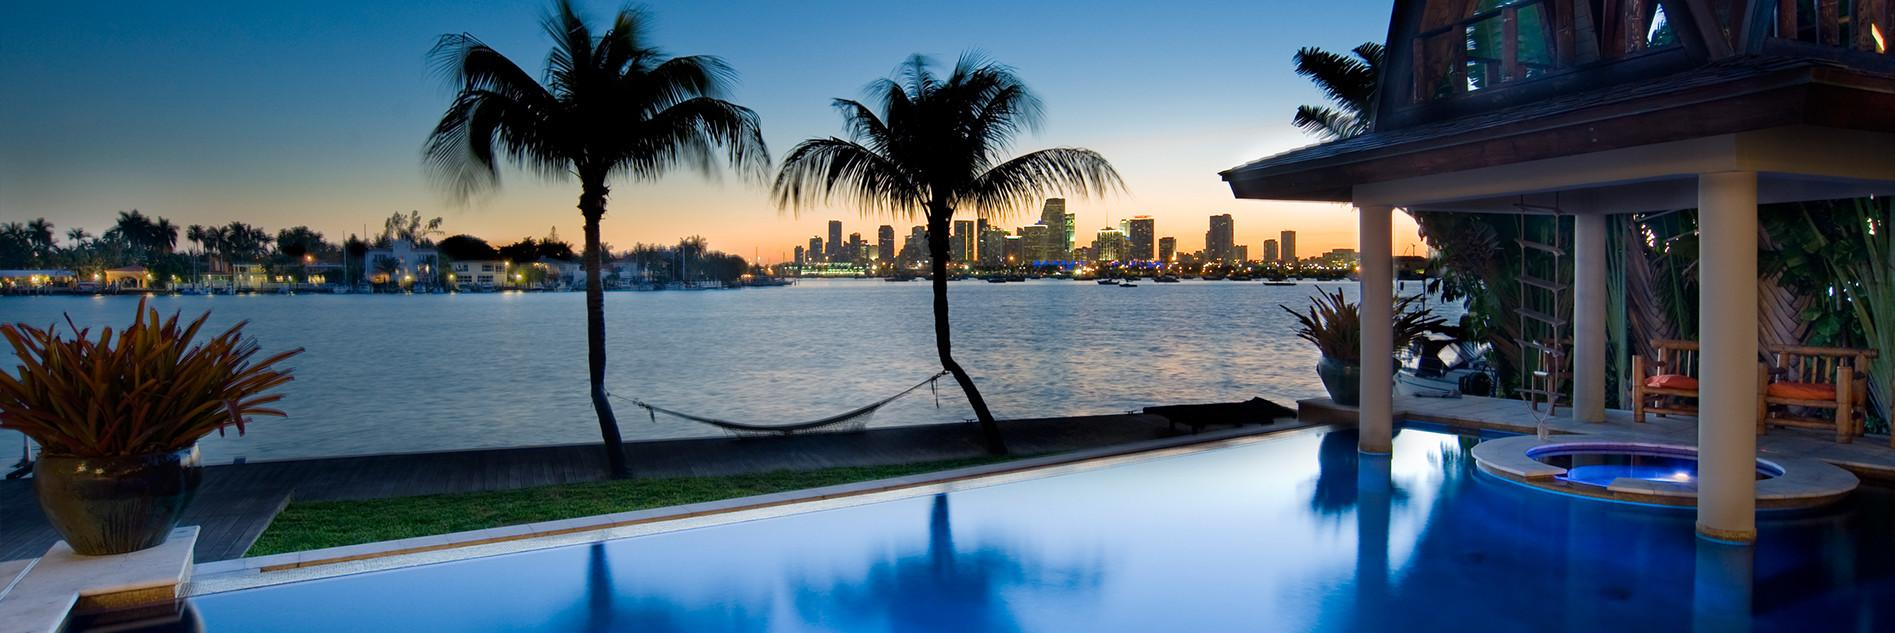 Miami Beach Luxury Real Estate Waterfront